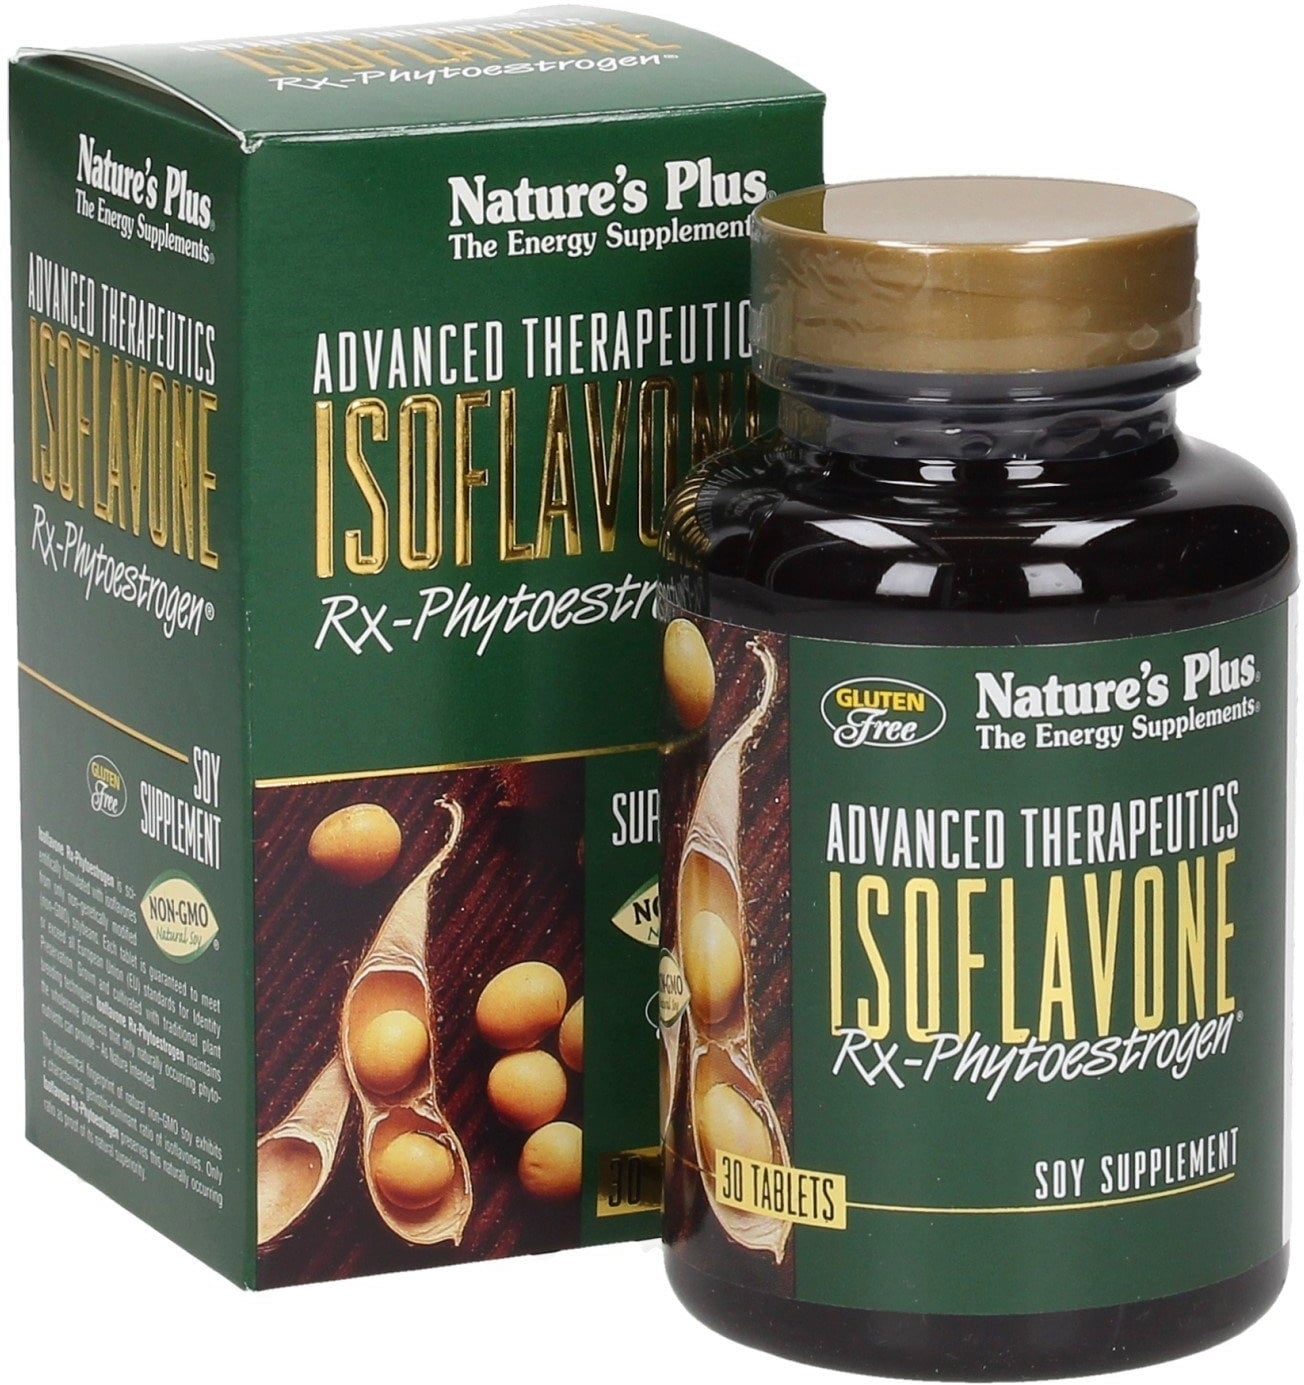 Nature's Plus Rx-Phytoestrogen® Isoflavone